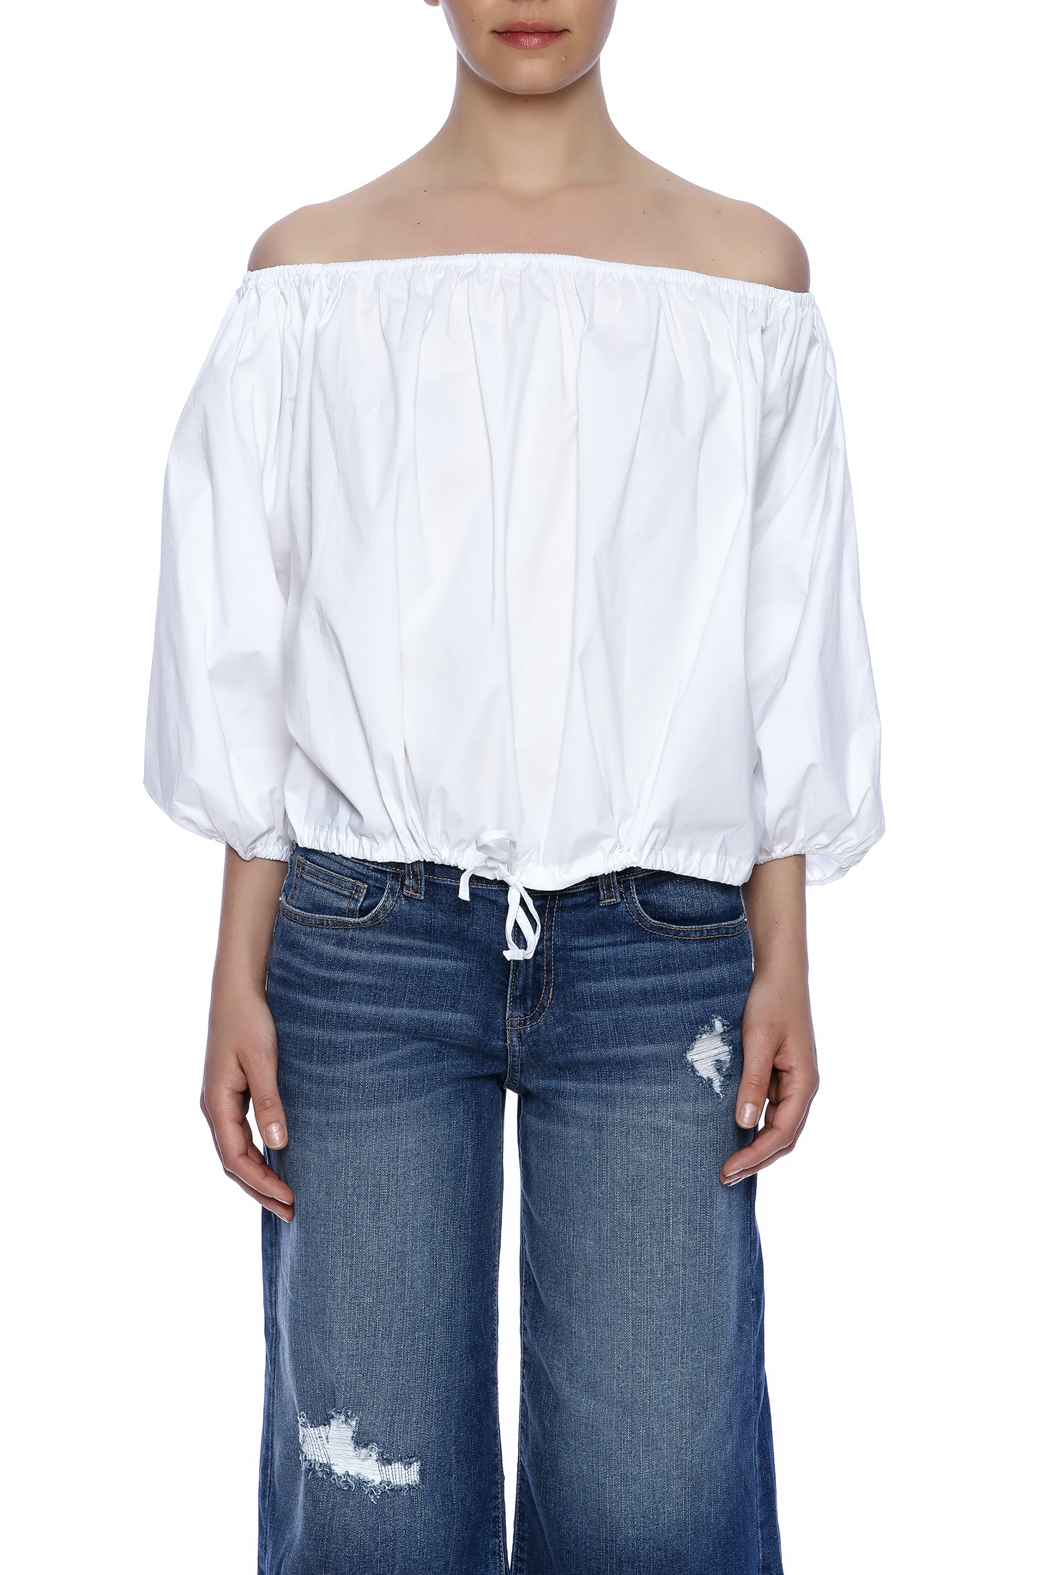 9a6c830ef226bf Do & Be White Balloon Top from New York by Dor L'Dor — Shoptiques